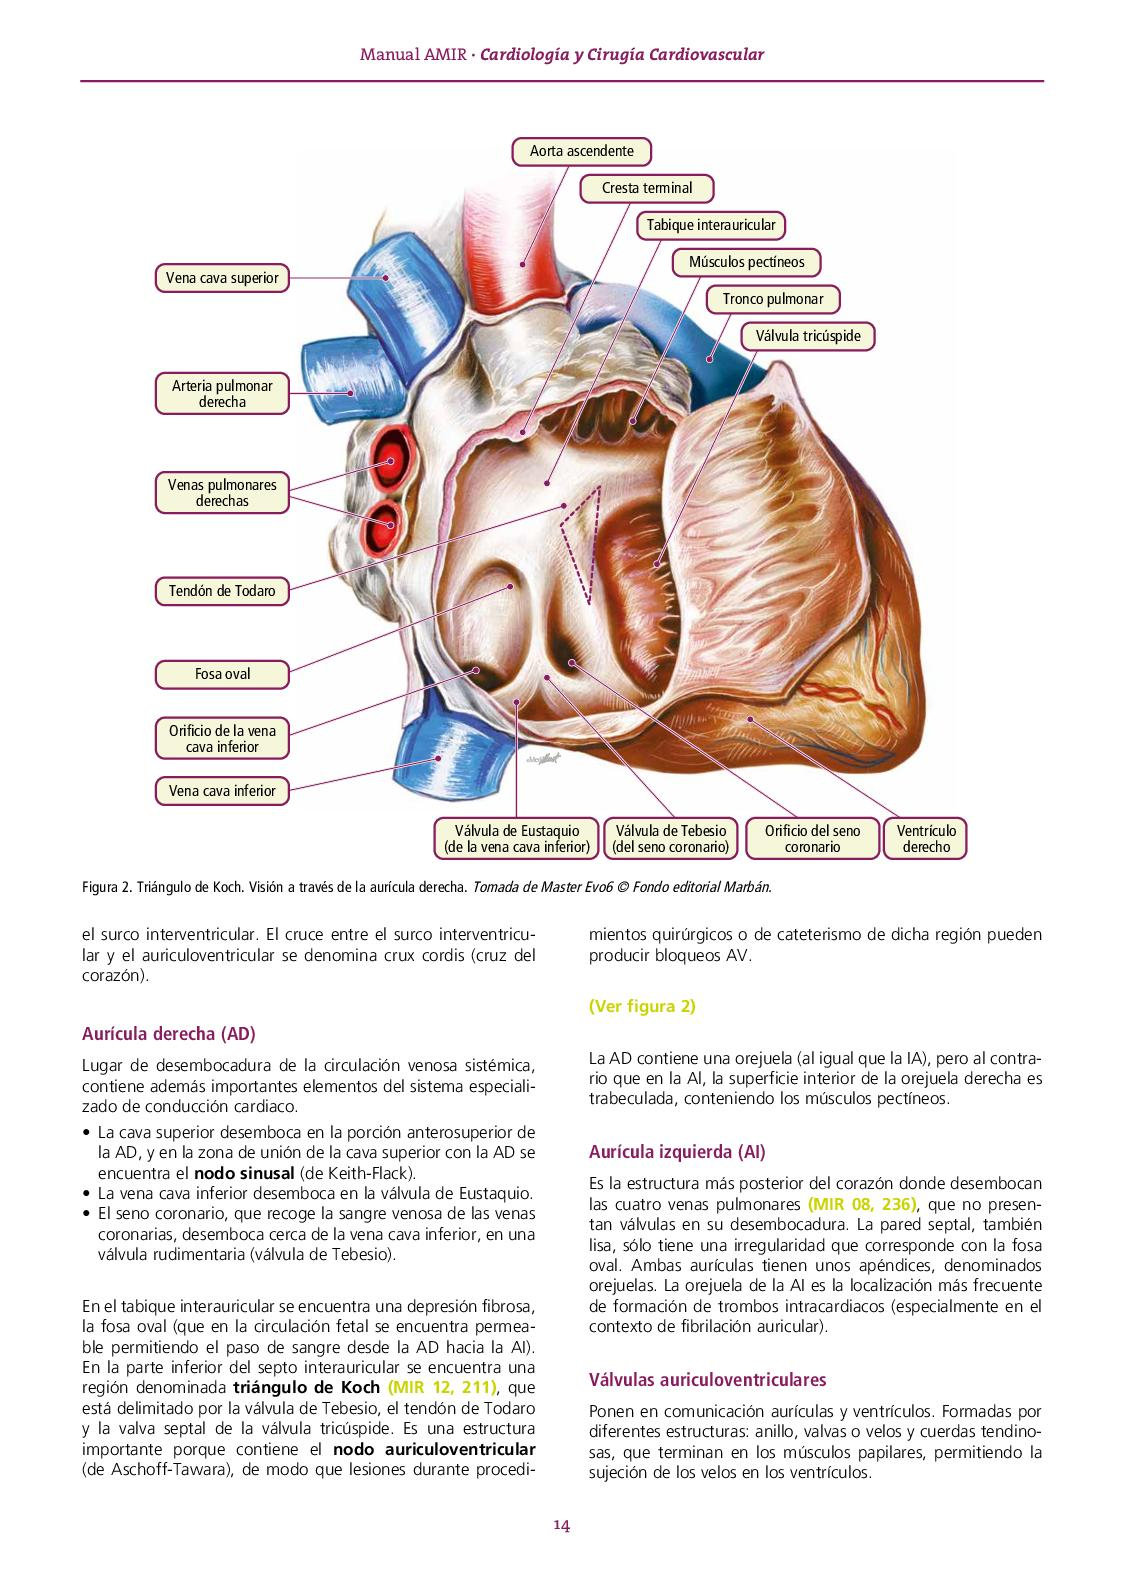 zona septal del corazon